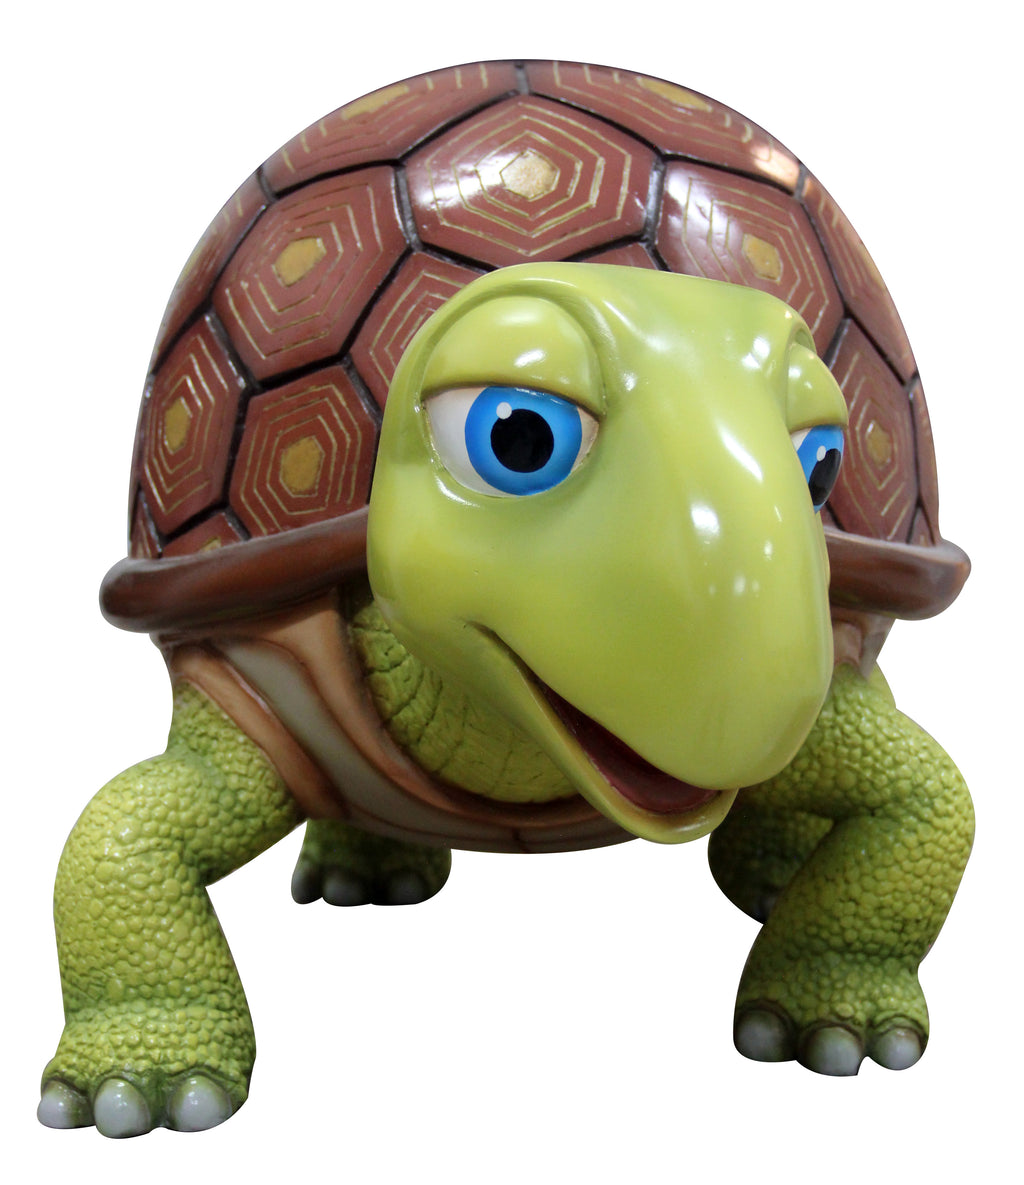 Comic Turtle Walking  Display Resin Prop Decor Statue - LM Treasures Prop Rentals